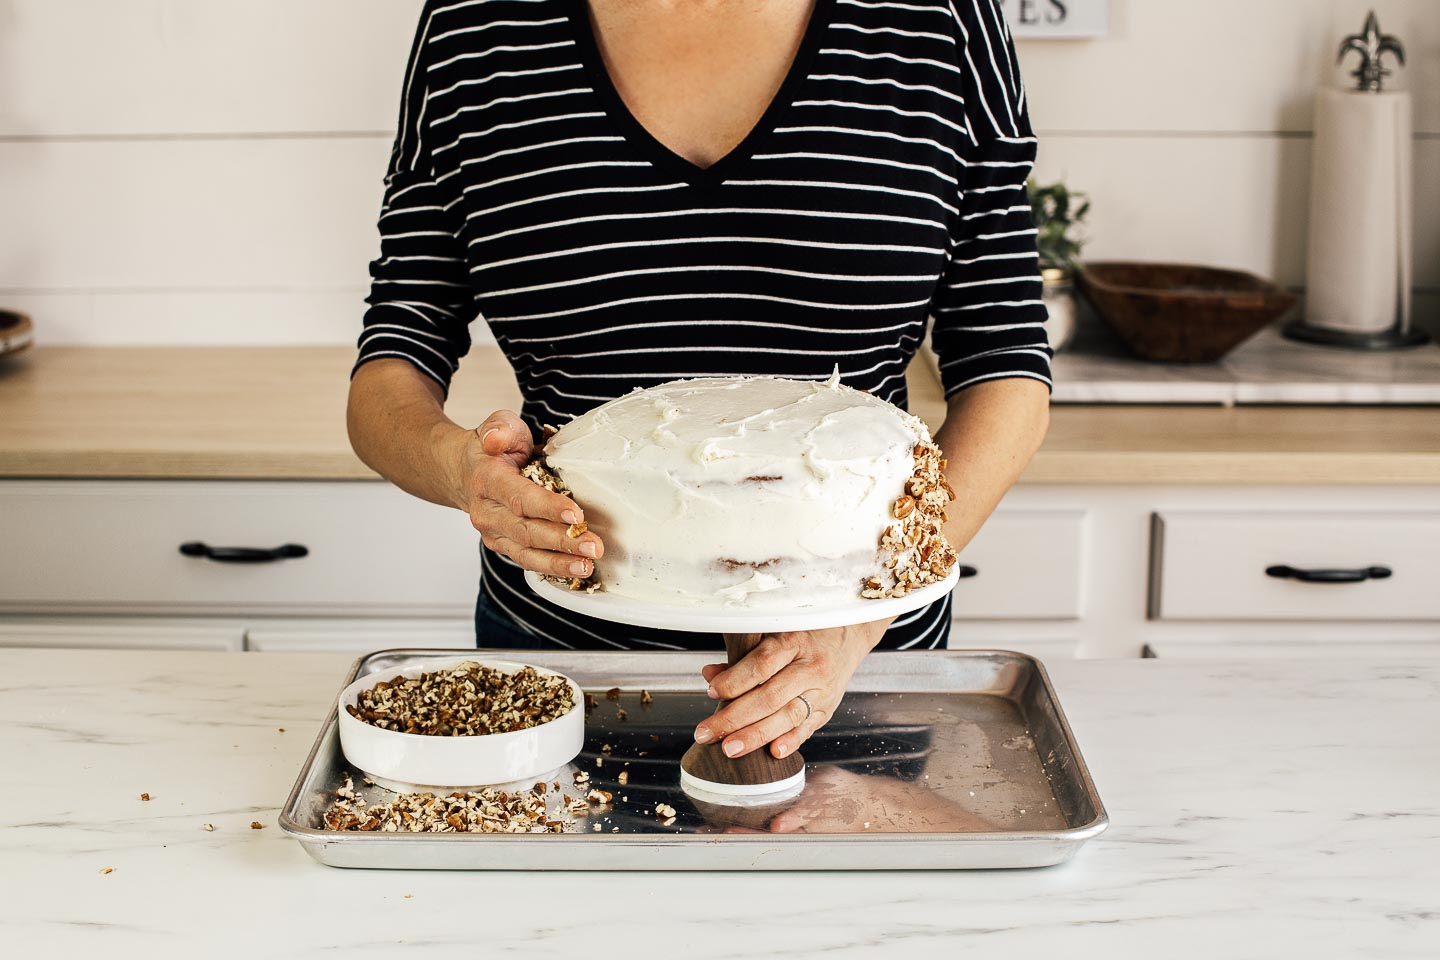 A woman decorating a cake with pecans.